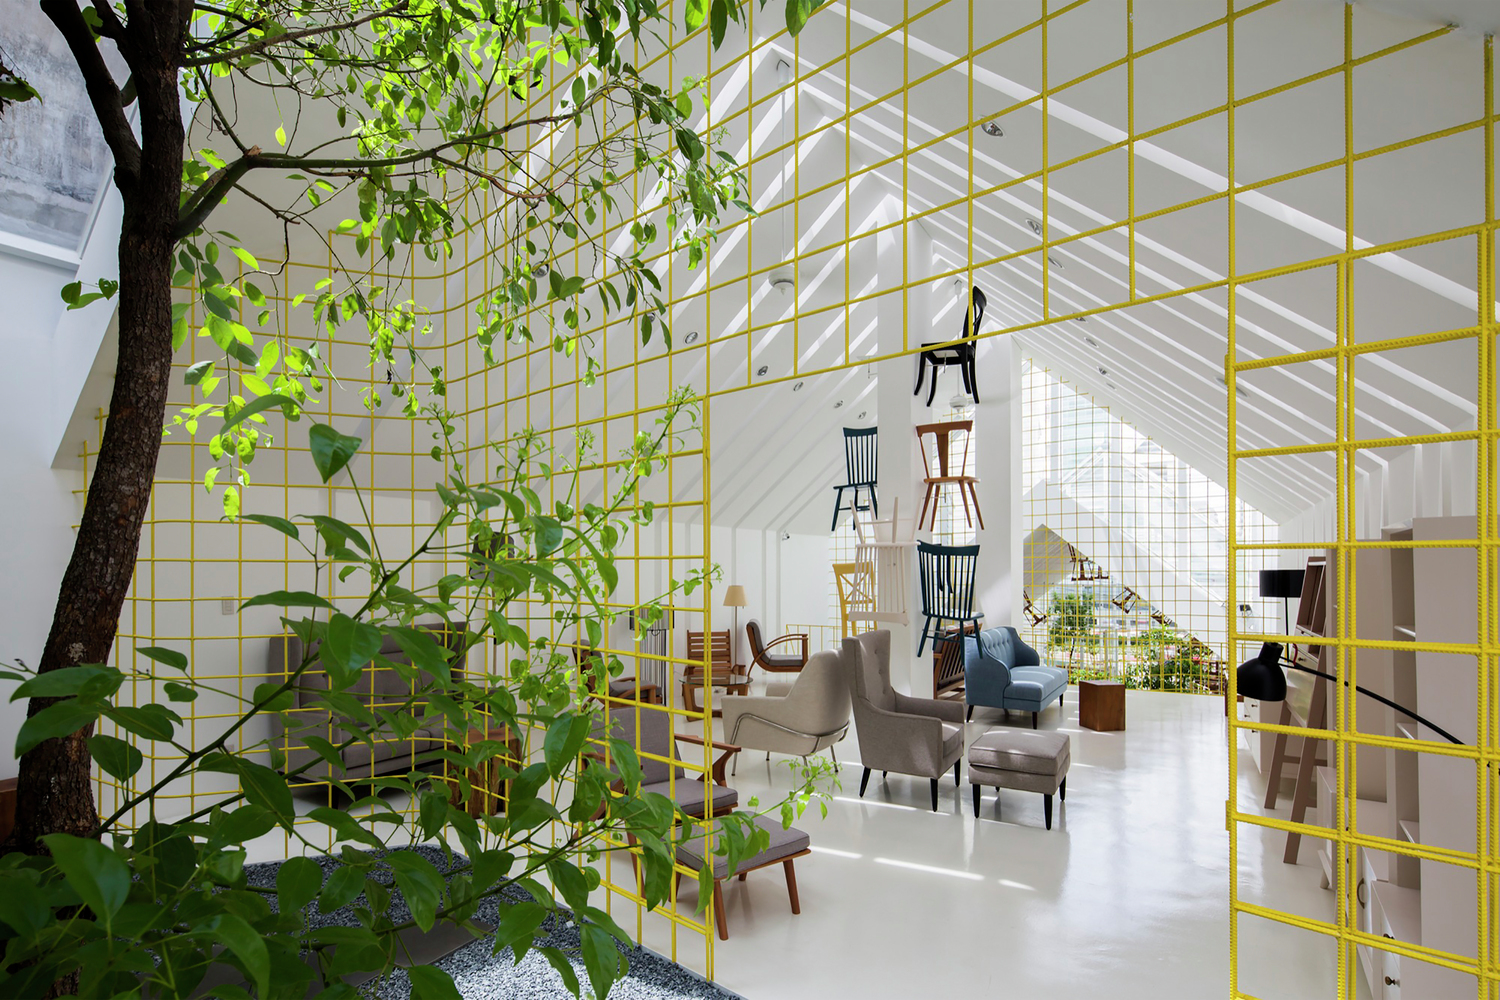 Thao Ho Home Furnishings / MW archstudio